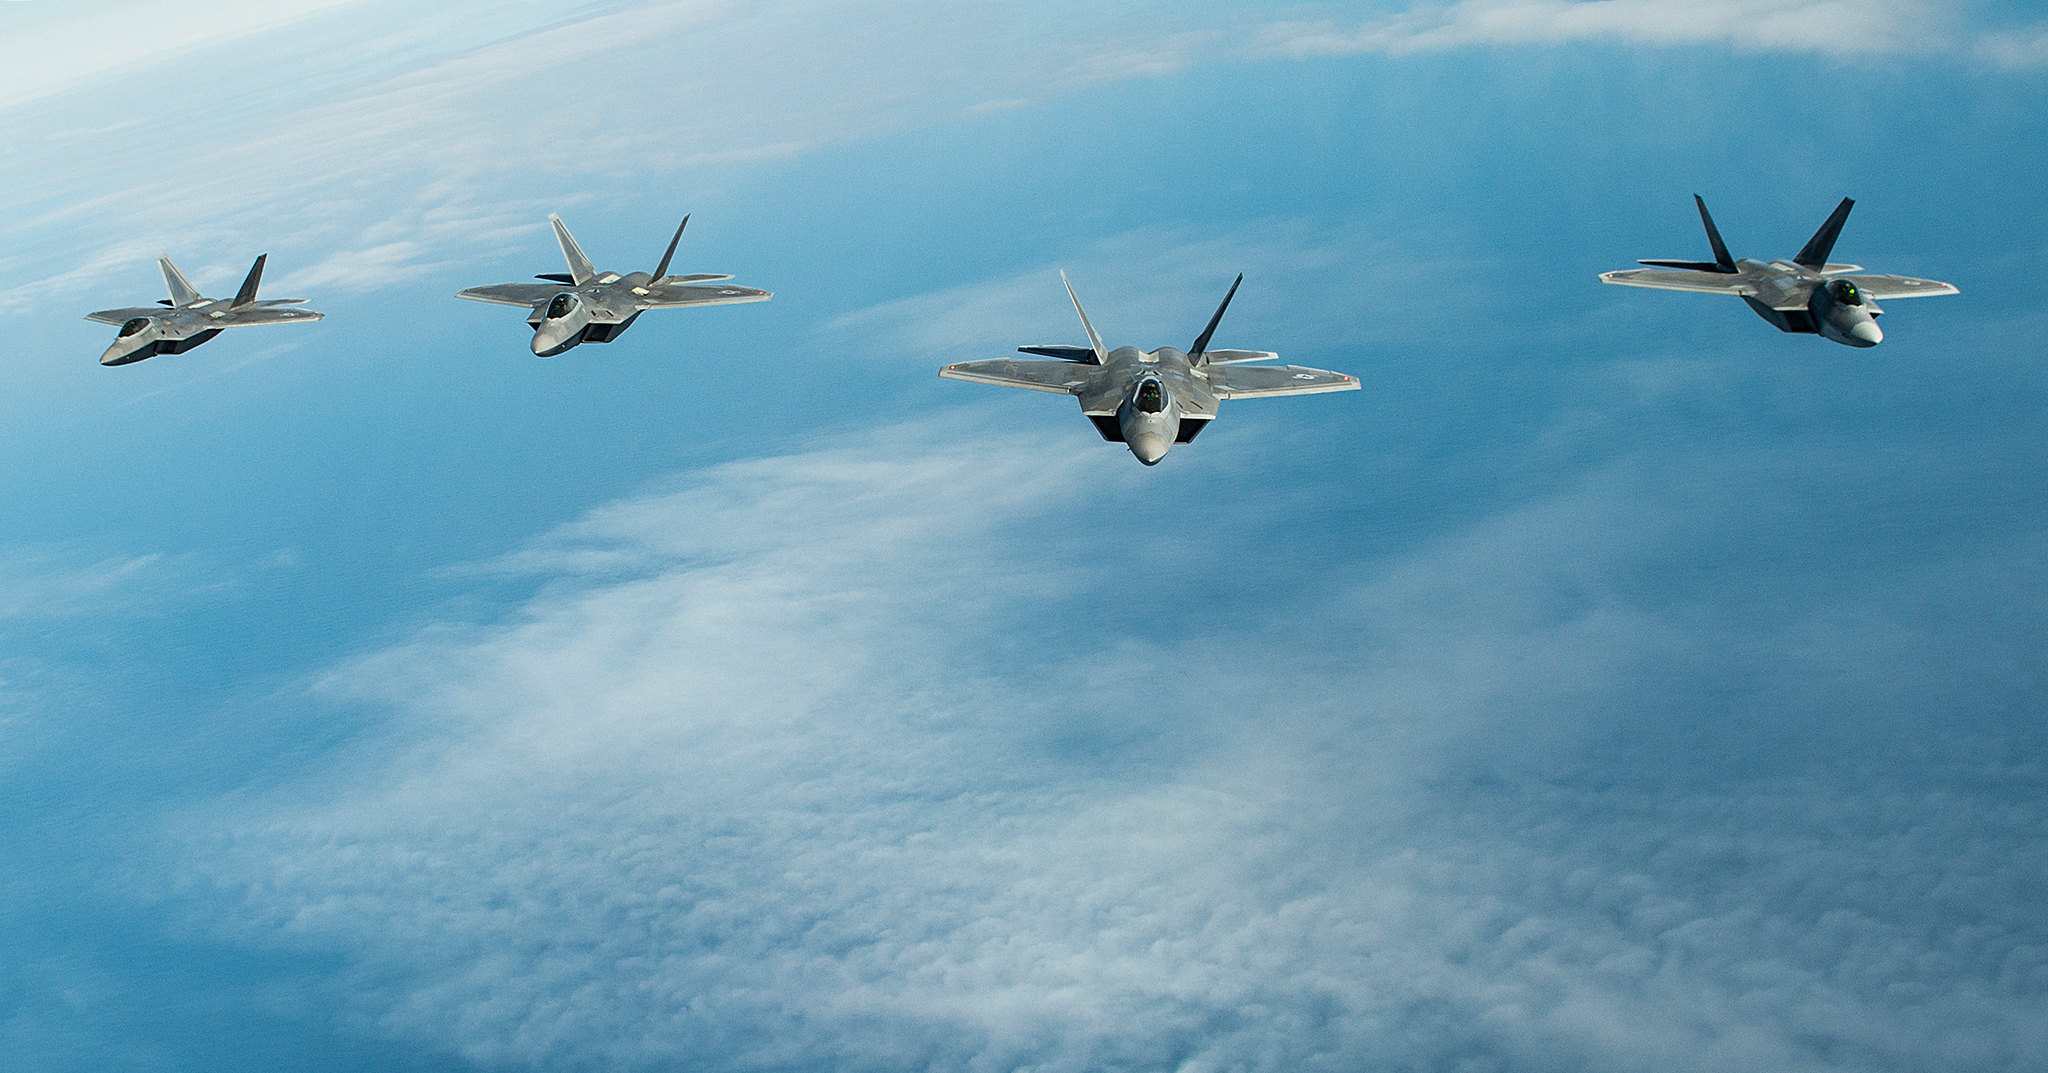 U.S. Air Force F-22 Raptors fly over Alaska during Northern Edge, May 14, 2019, at Joint Base Elmendorf-Richardson. (Master Sgt. Nathan Lipscomb/Air Force)